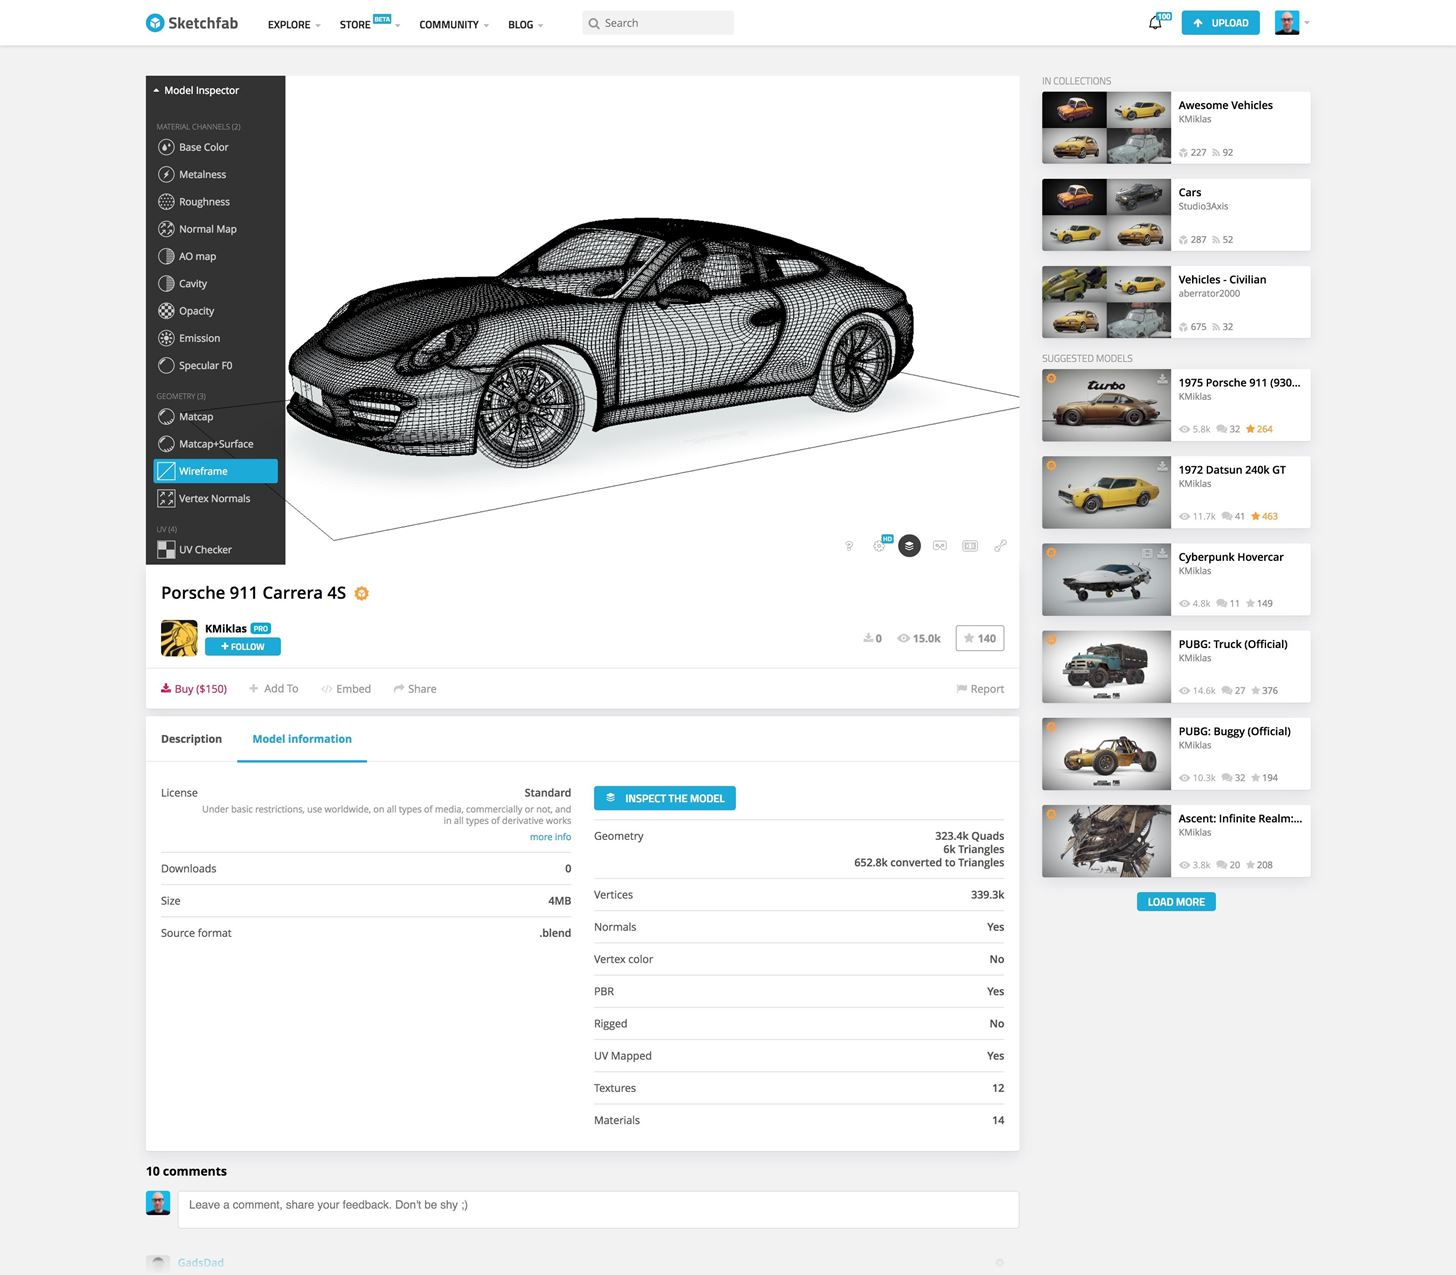 Sketchfab Launches Professional 3D Model Store for AR & VR Content Creators